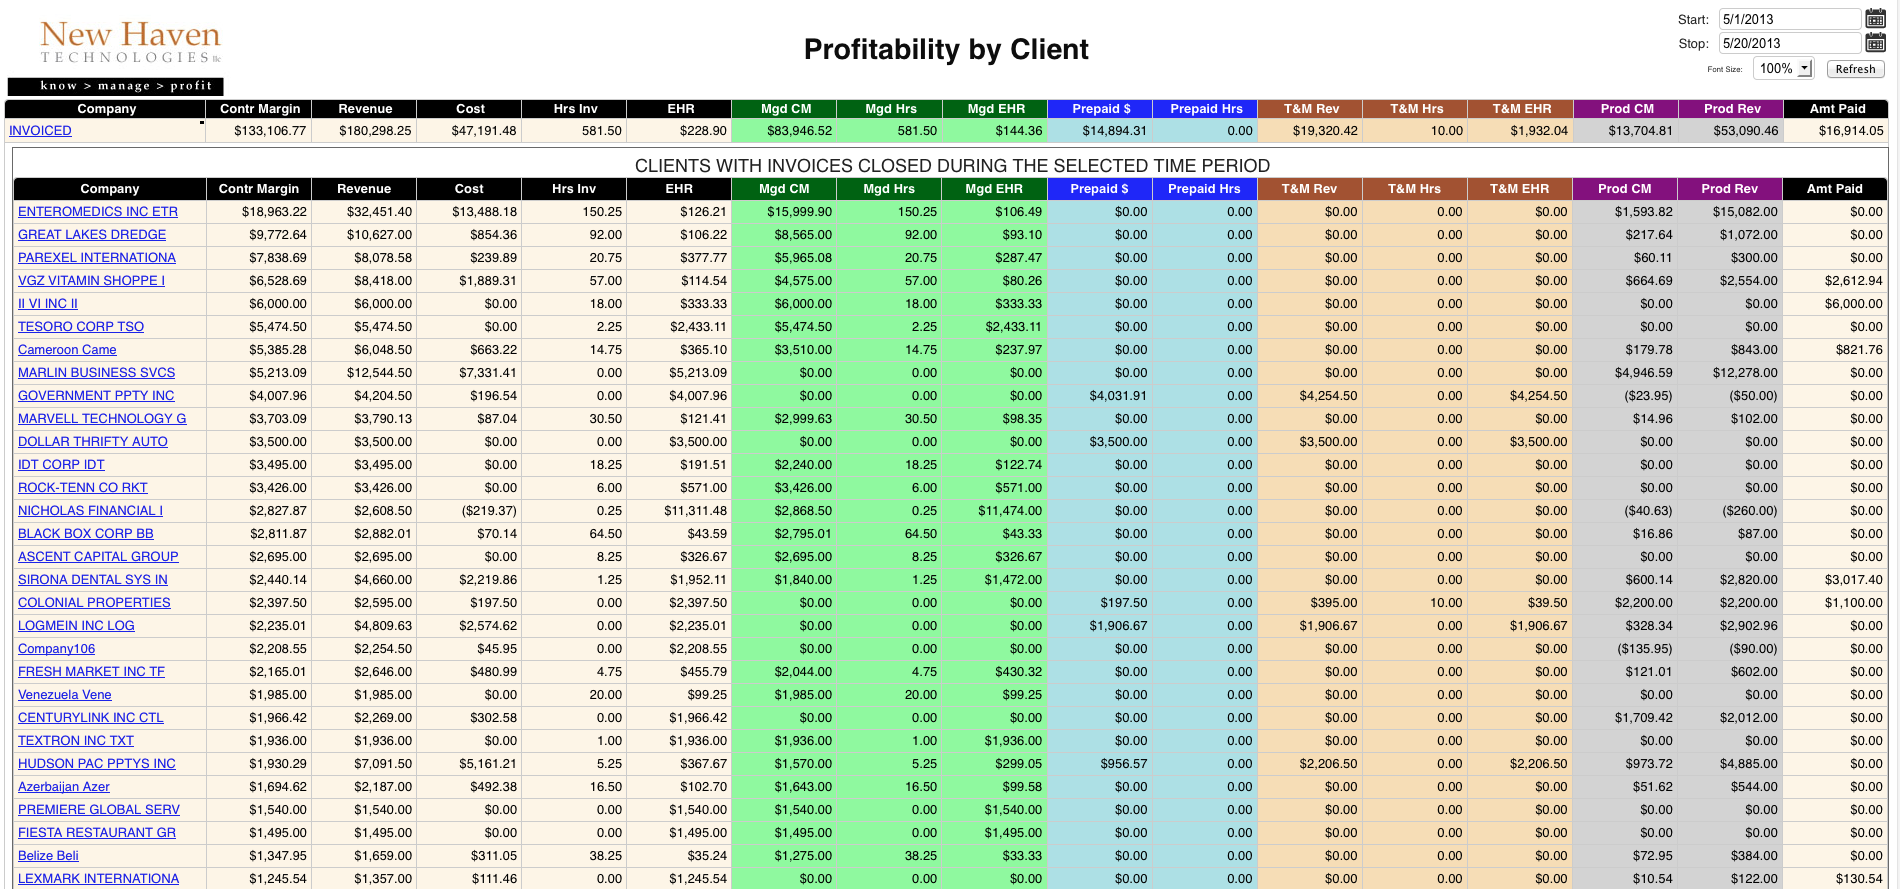 Profitability by Client